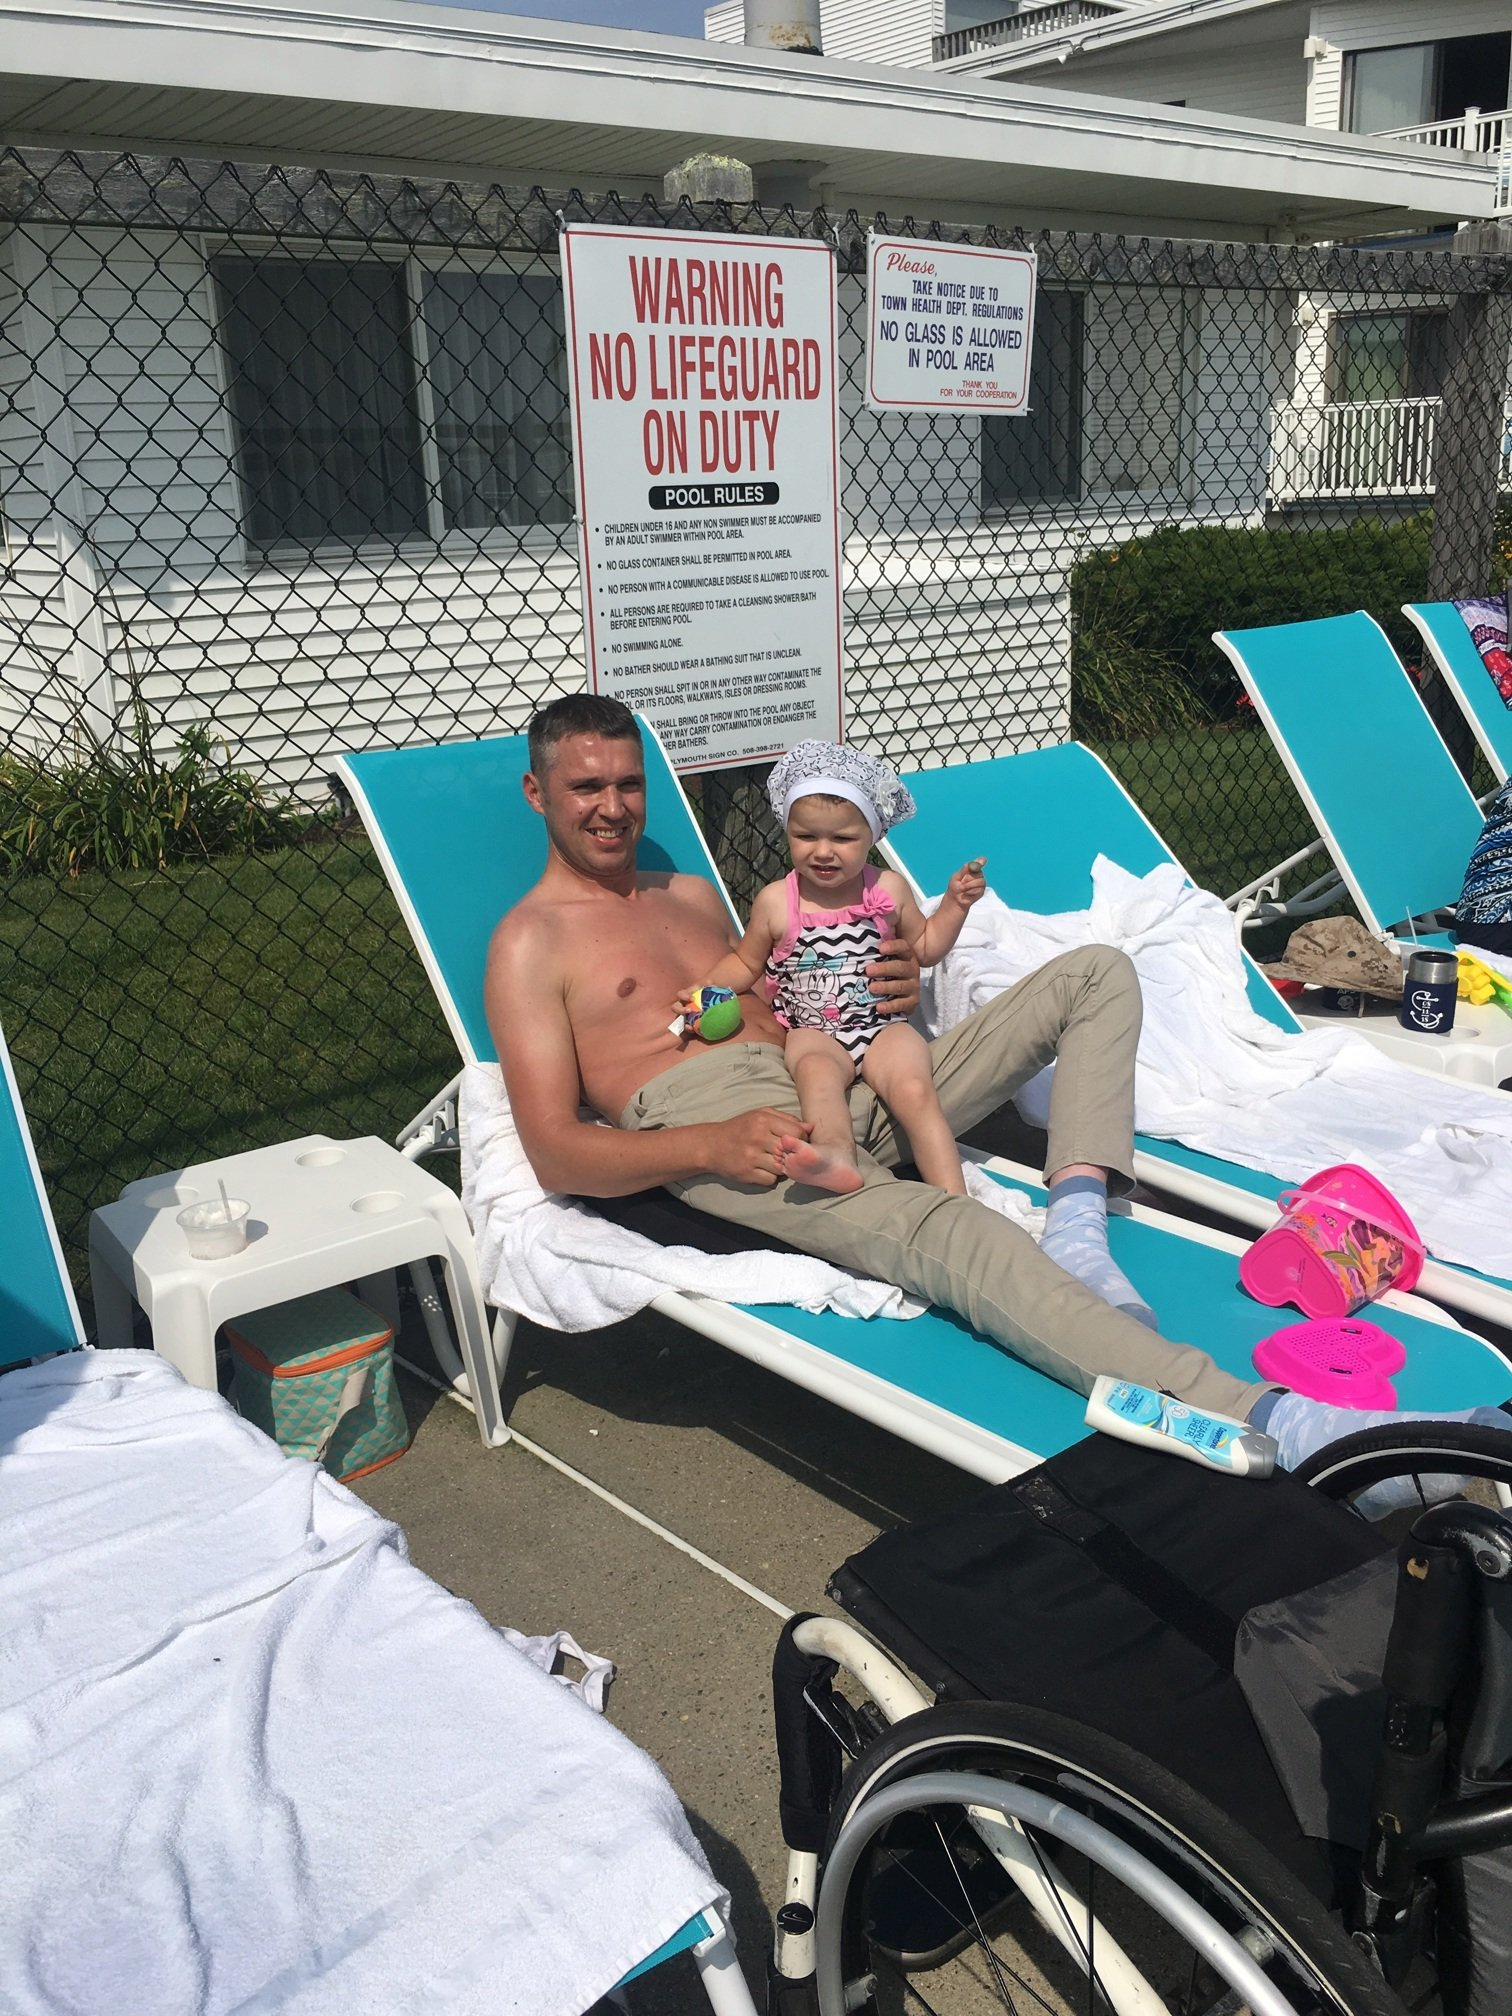 Gabriel and Daughter at the pool